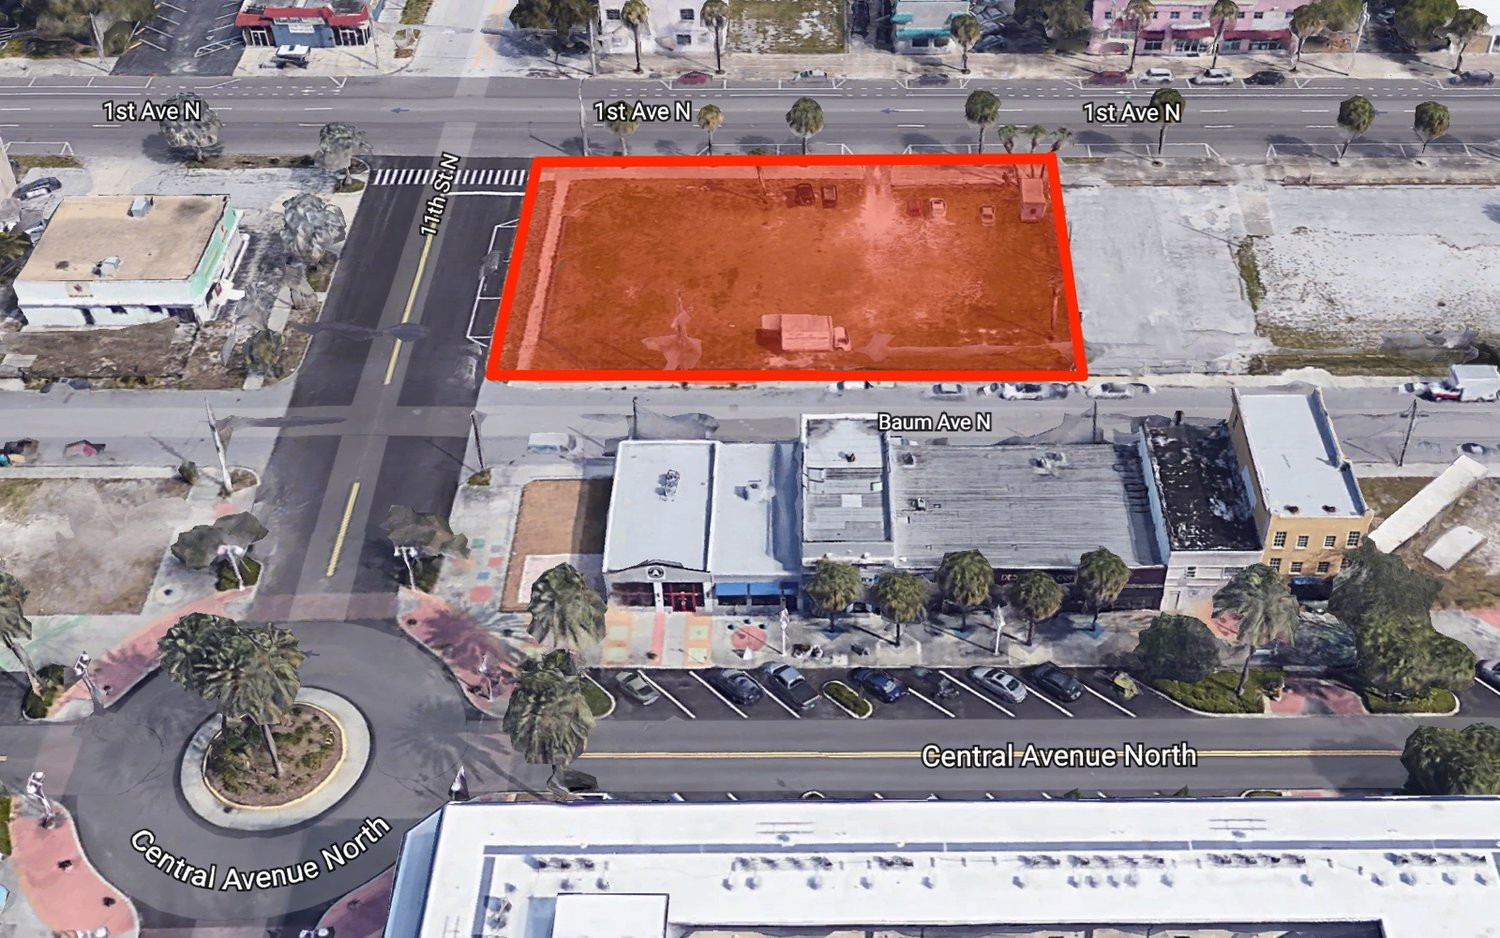 The EDGE Hotel will be located on a currently vacant lot at the southeast corner of 1st Avenue North and 11th Street North.